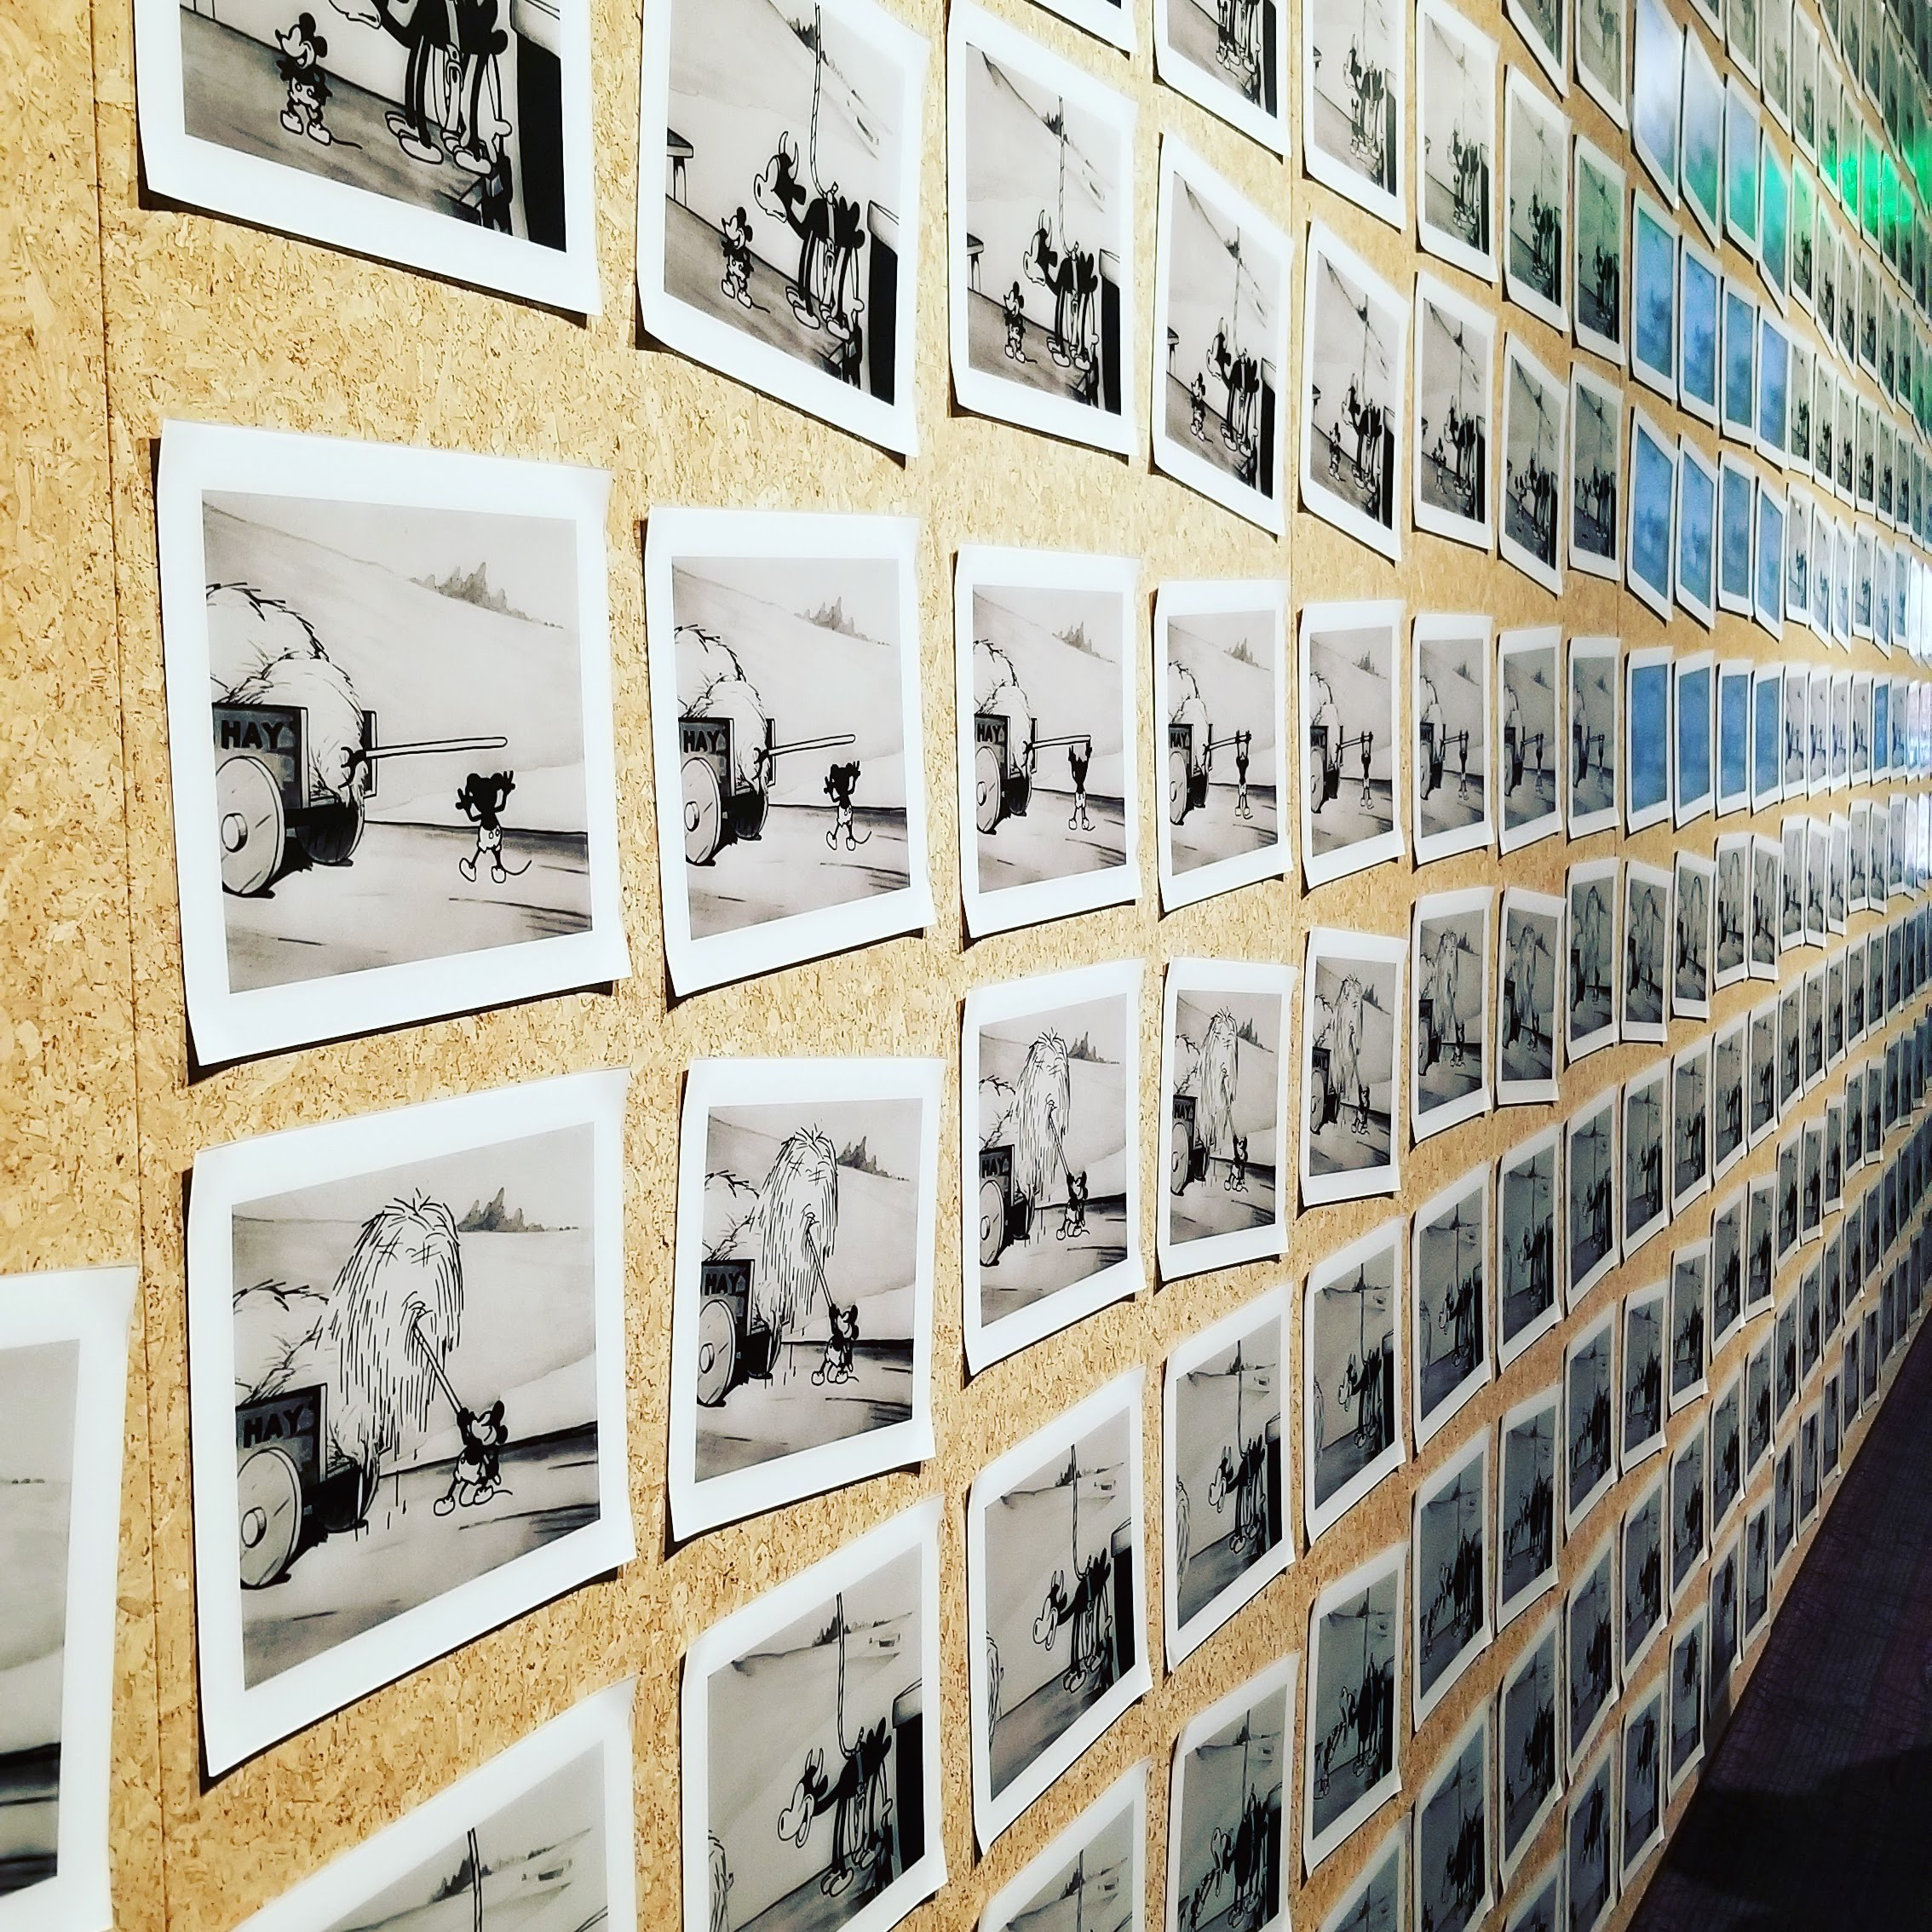 348 drawings from the cartoon Steamboat Willie, representing less than 15 seconds of film.